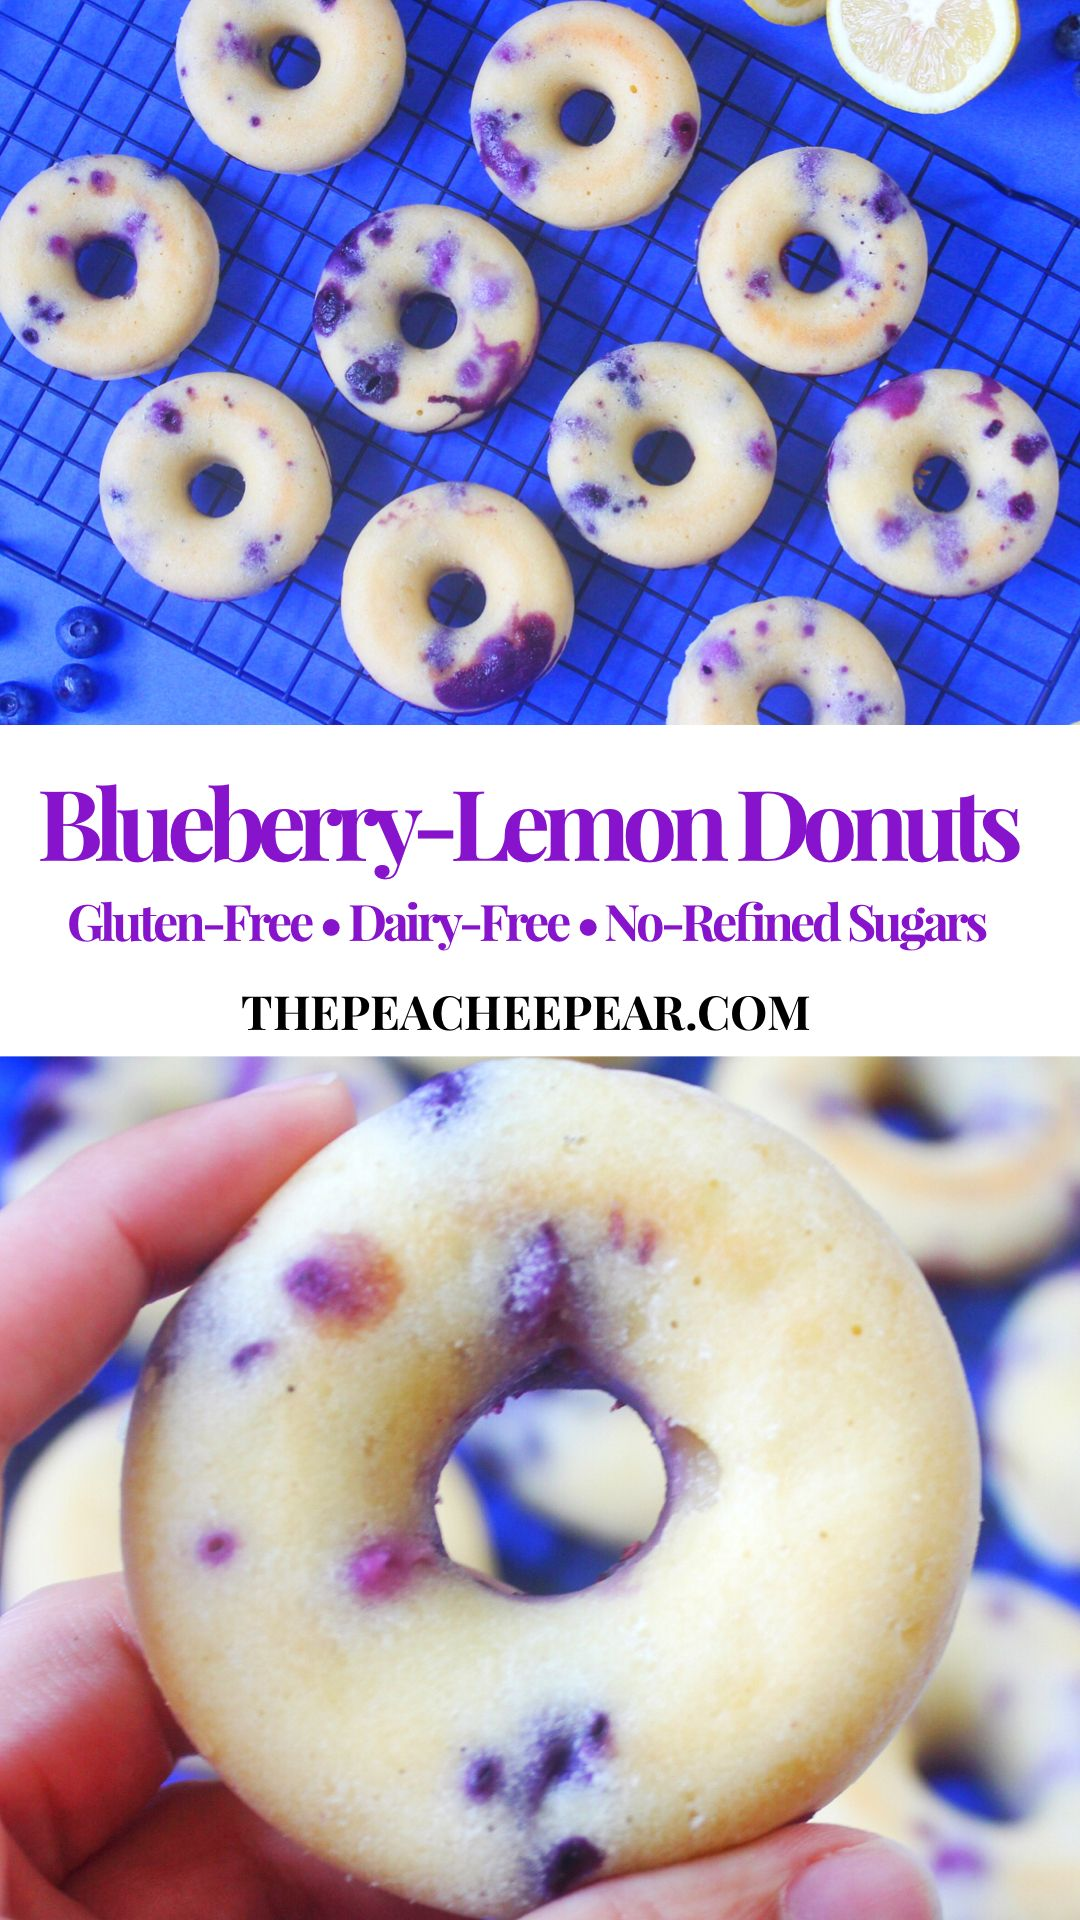 Blueberry-Lemon Donuts